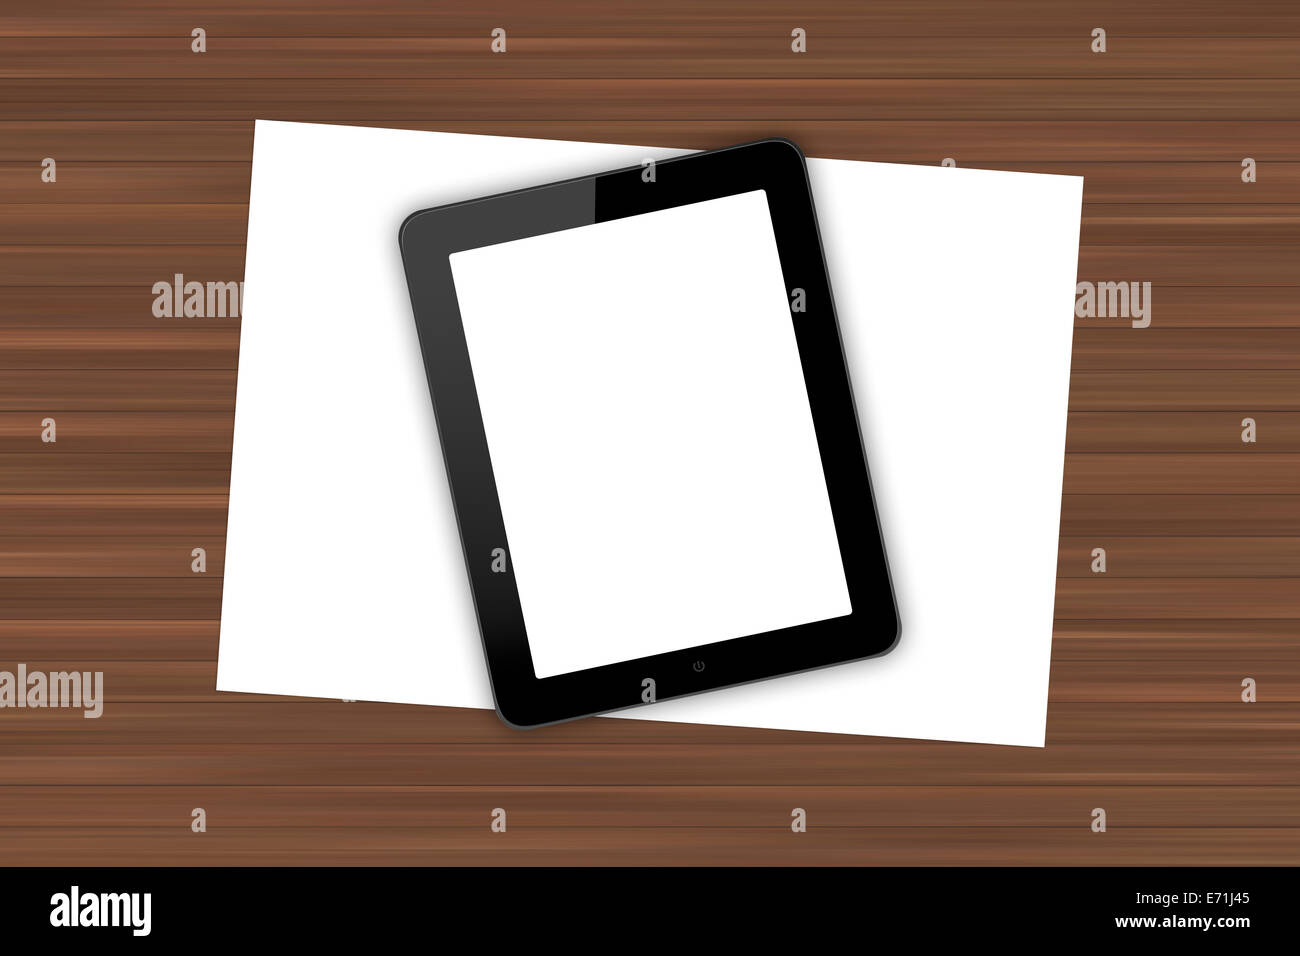 Top view of workplace with blank white screen digital tablet and paper sheet on wooden table. - Stock Image